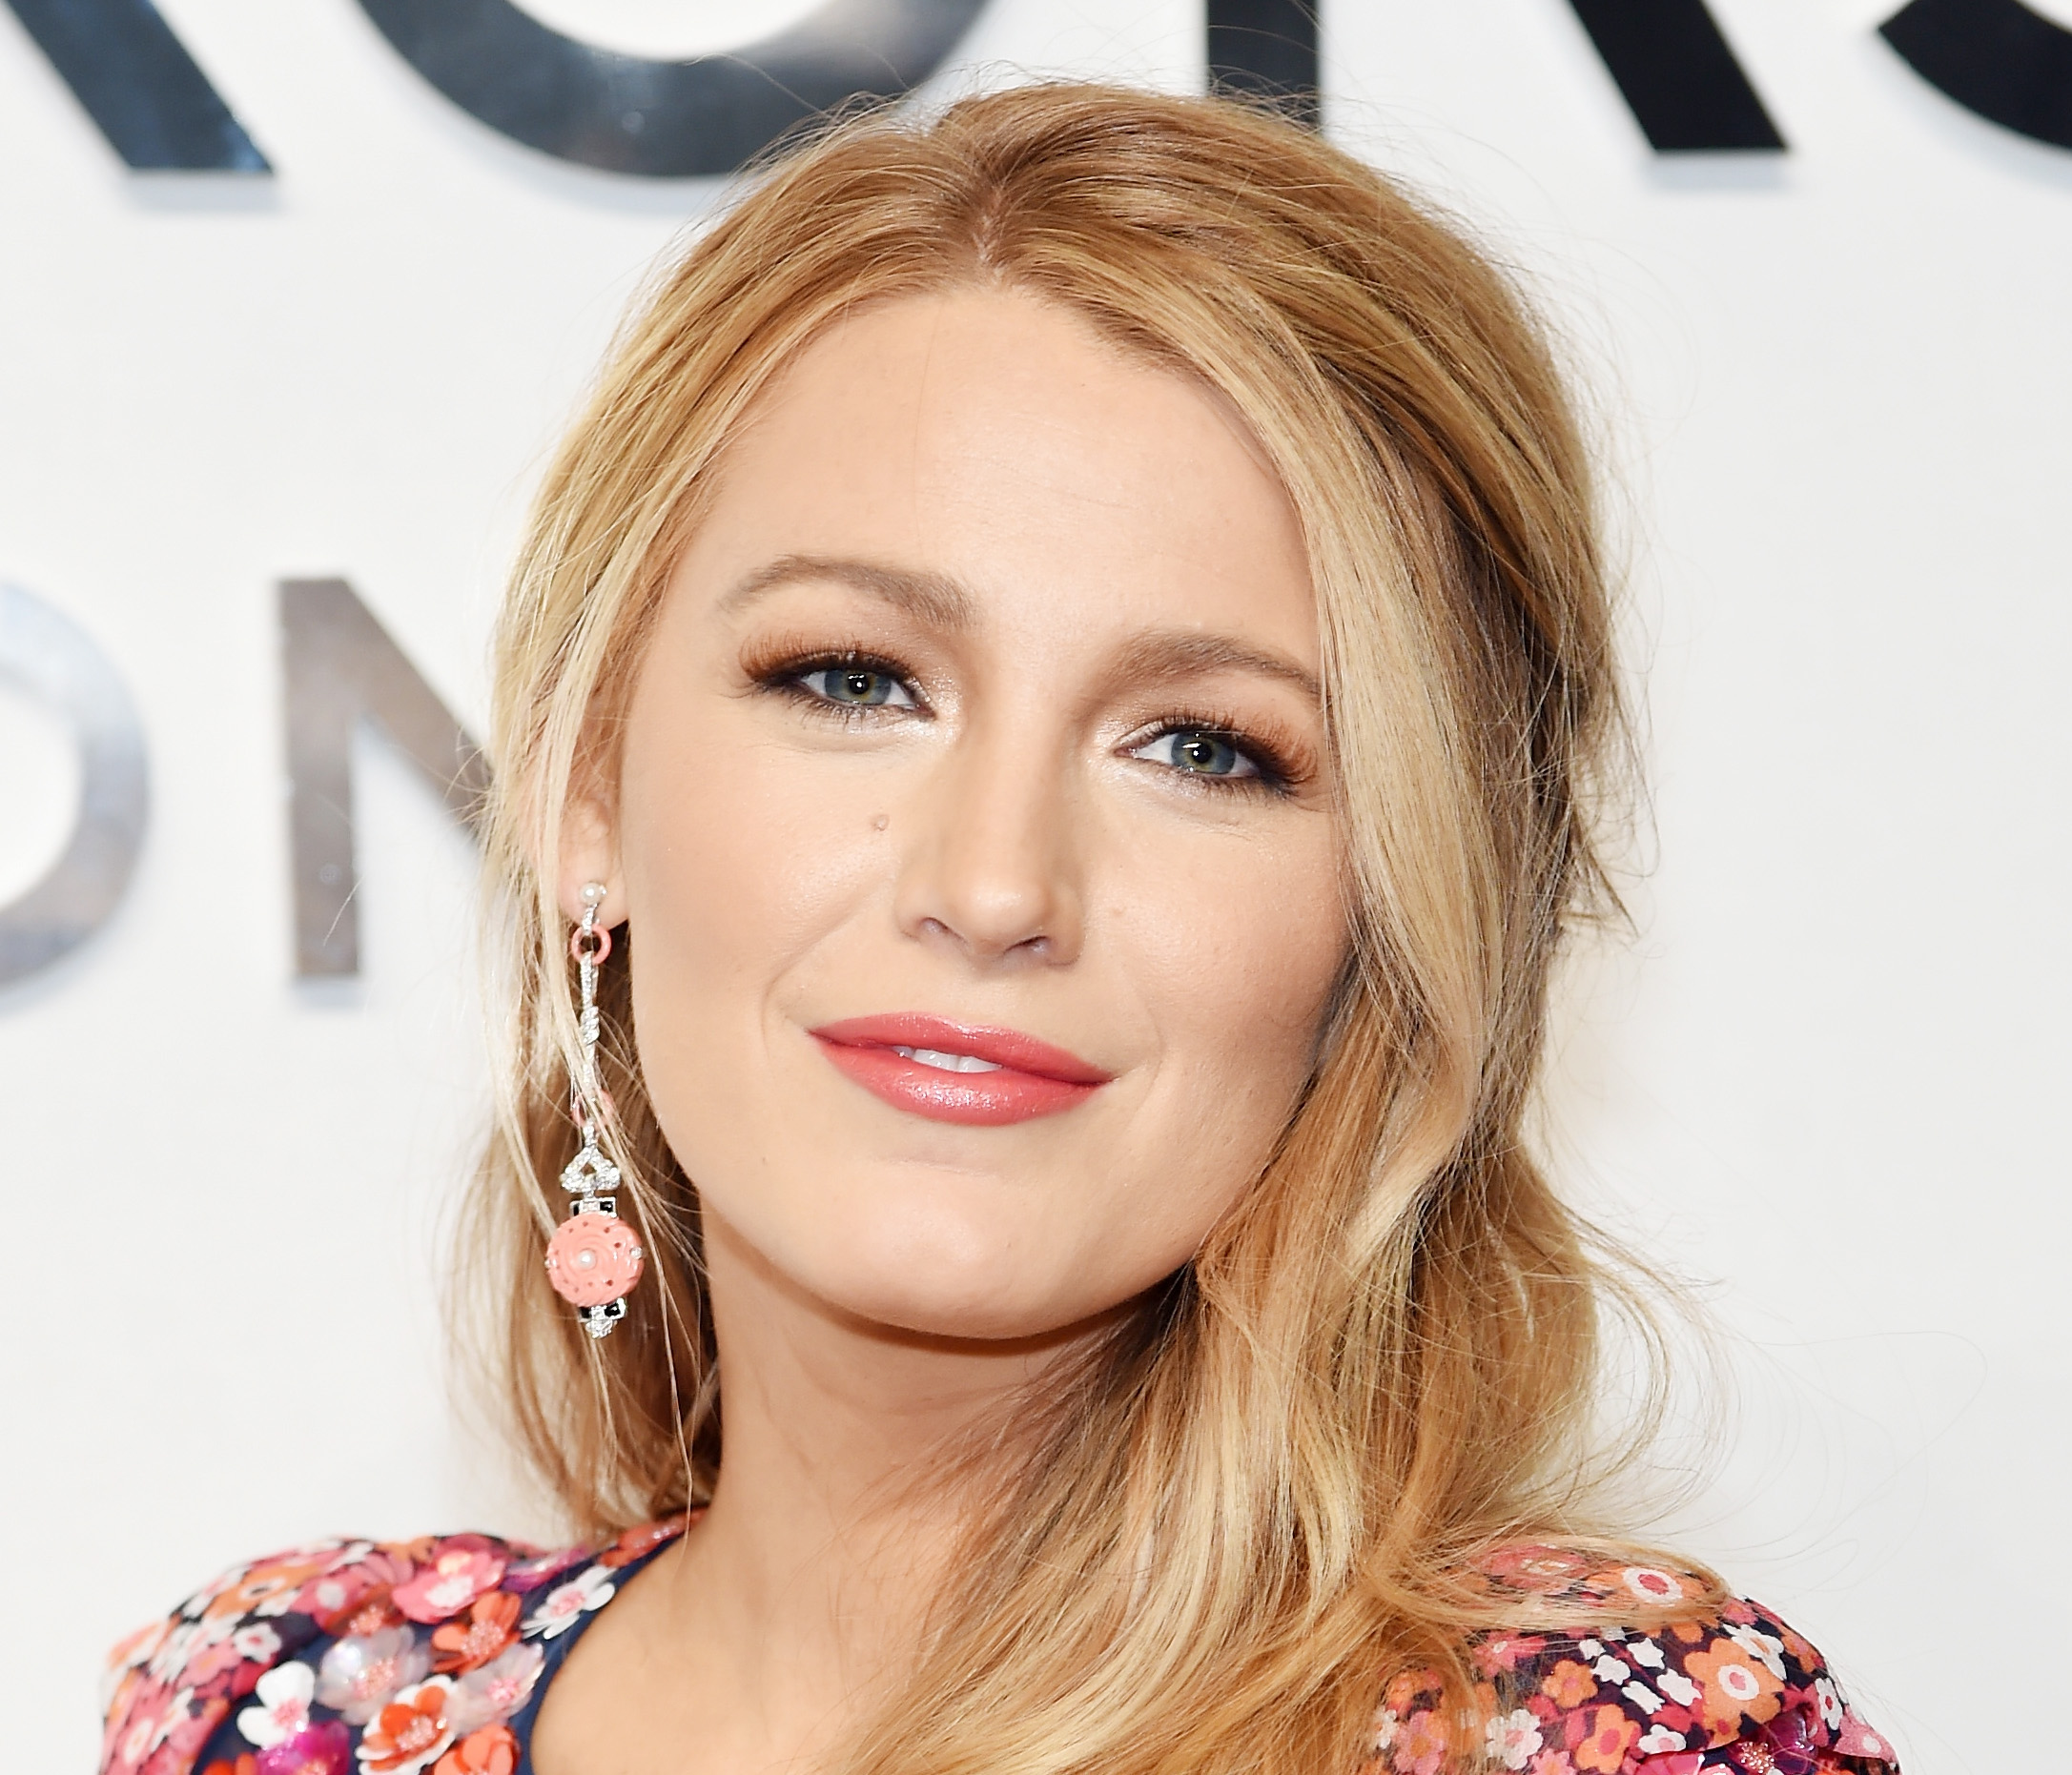 Blake Lively is bringing the '60s back in this psychedelic springtime dress